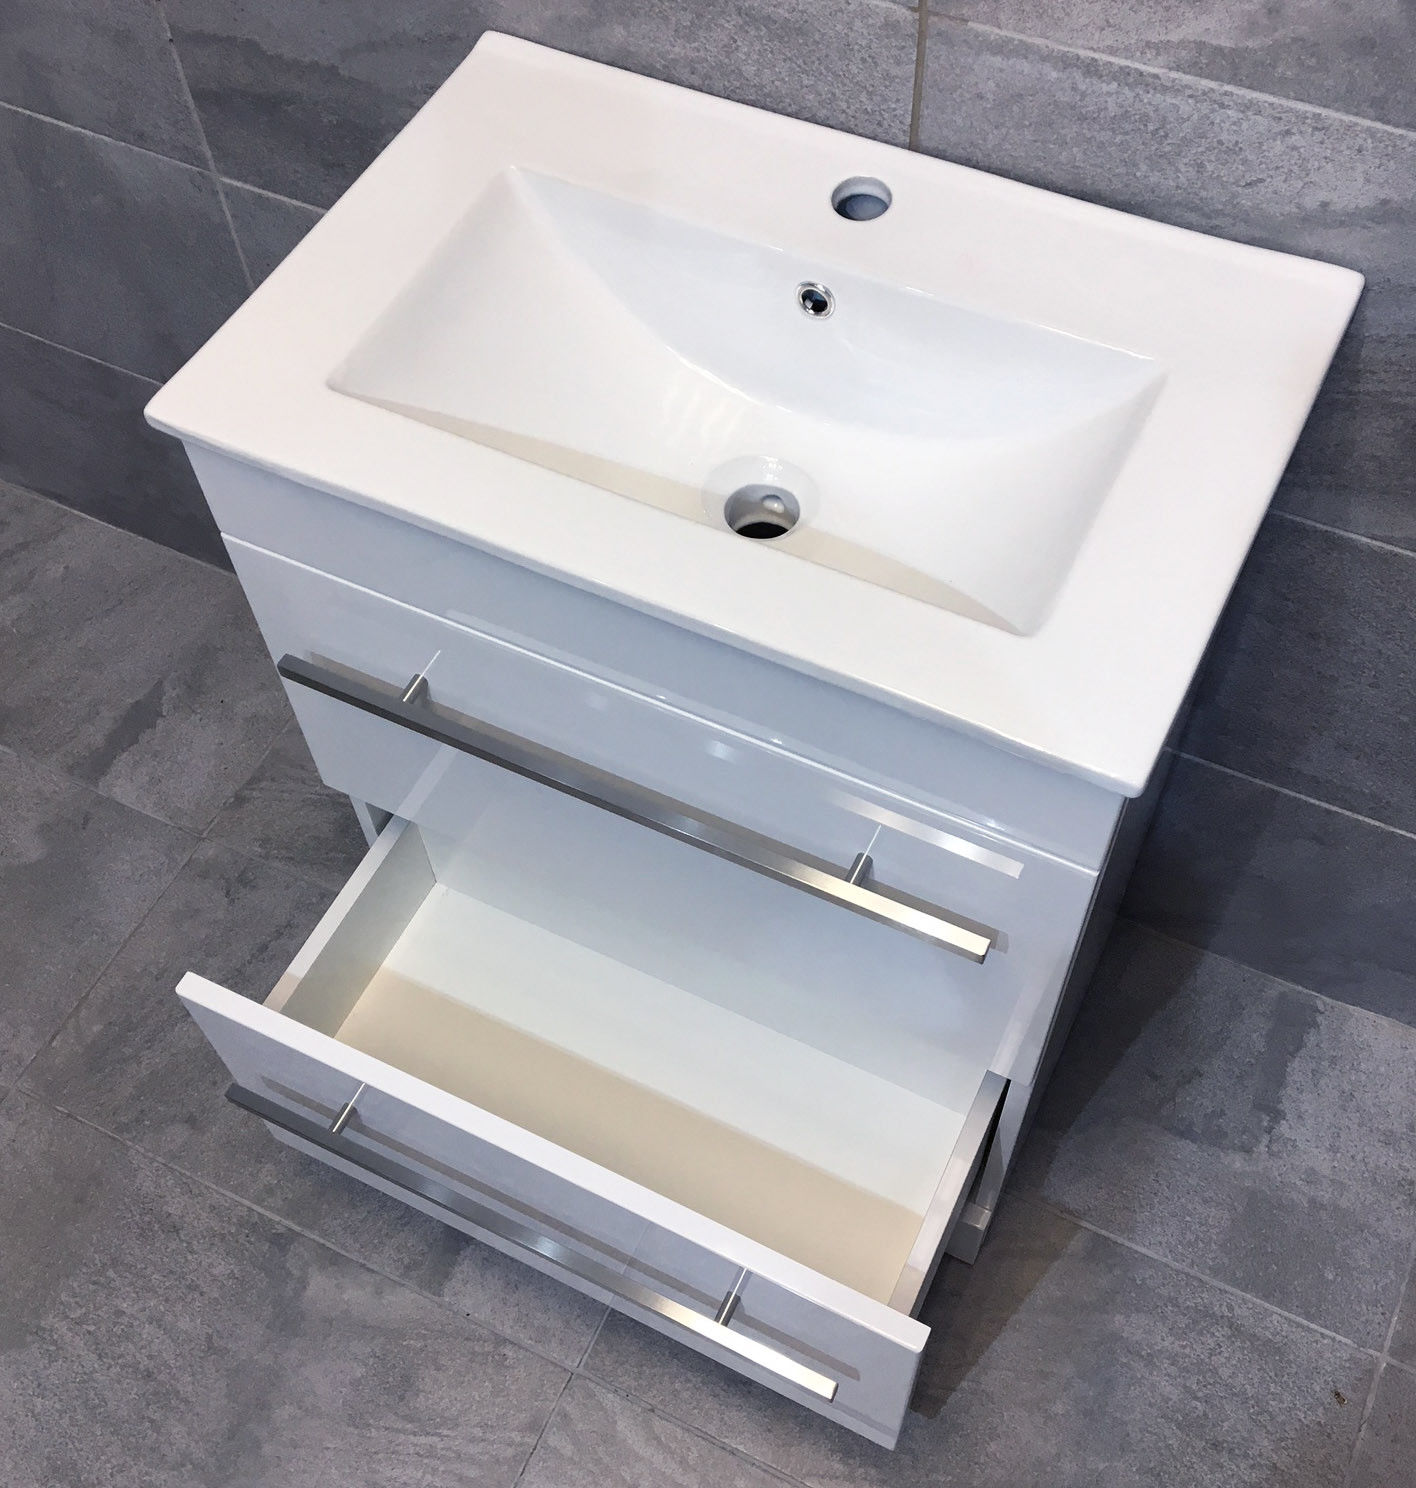 savu 600mm square vanity unit ceramic basin sink unit. Black Bedroom Furniture Sets. Home Design Ideas